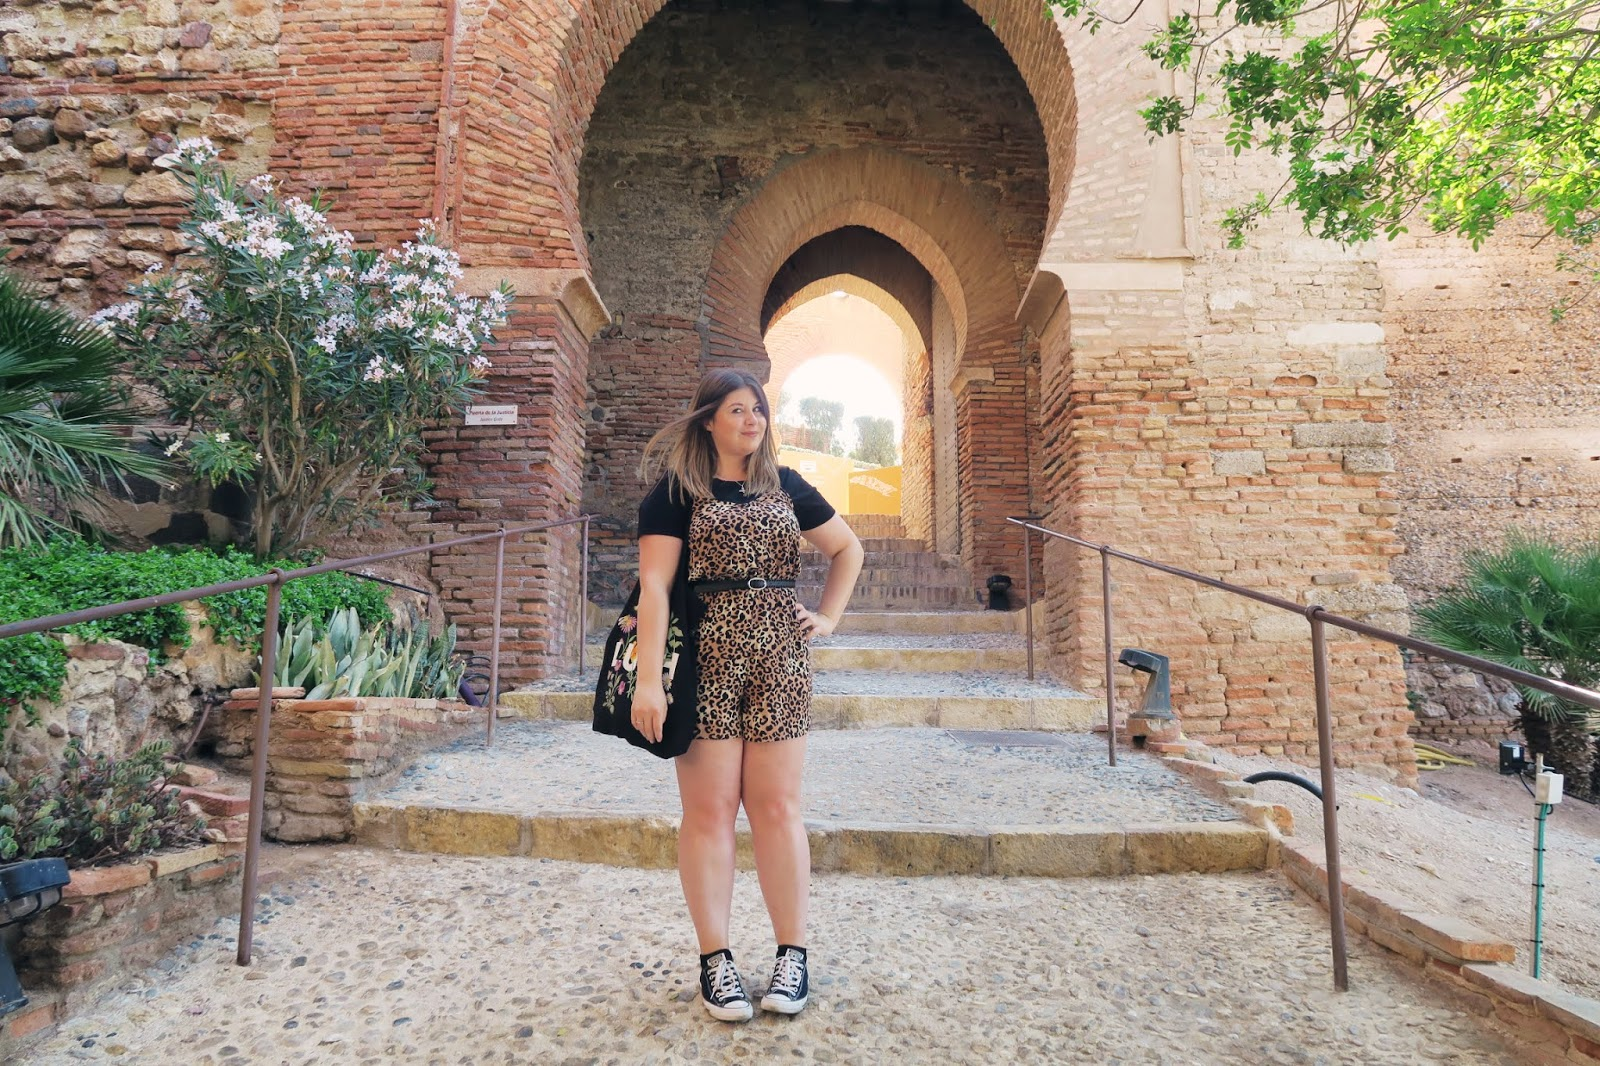 Standing in front of a row of arches inside Almeria Alcazaba